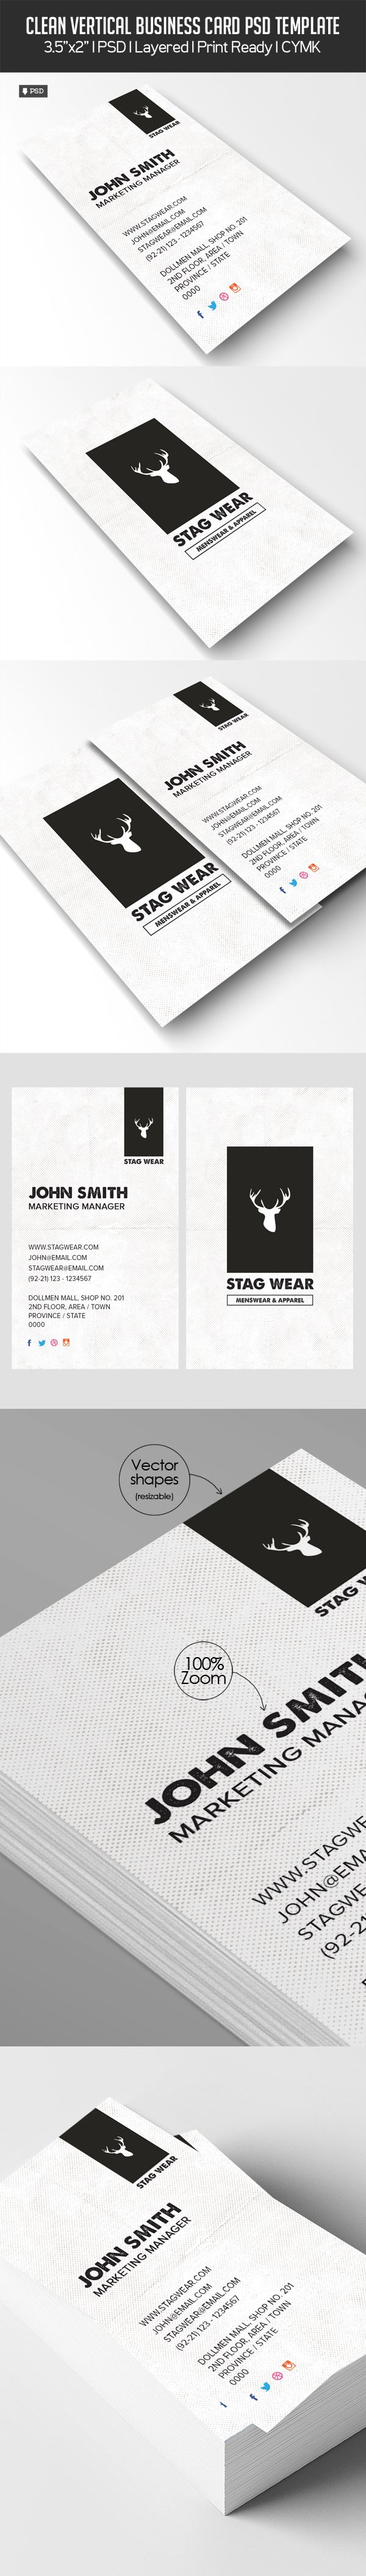 277 best business card images on pinterest